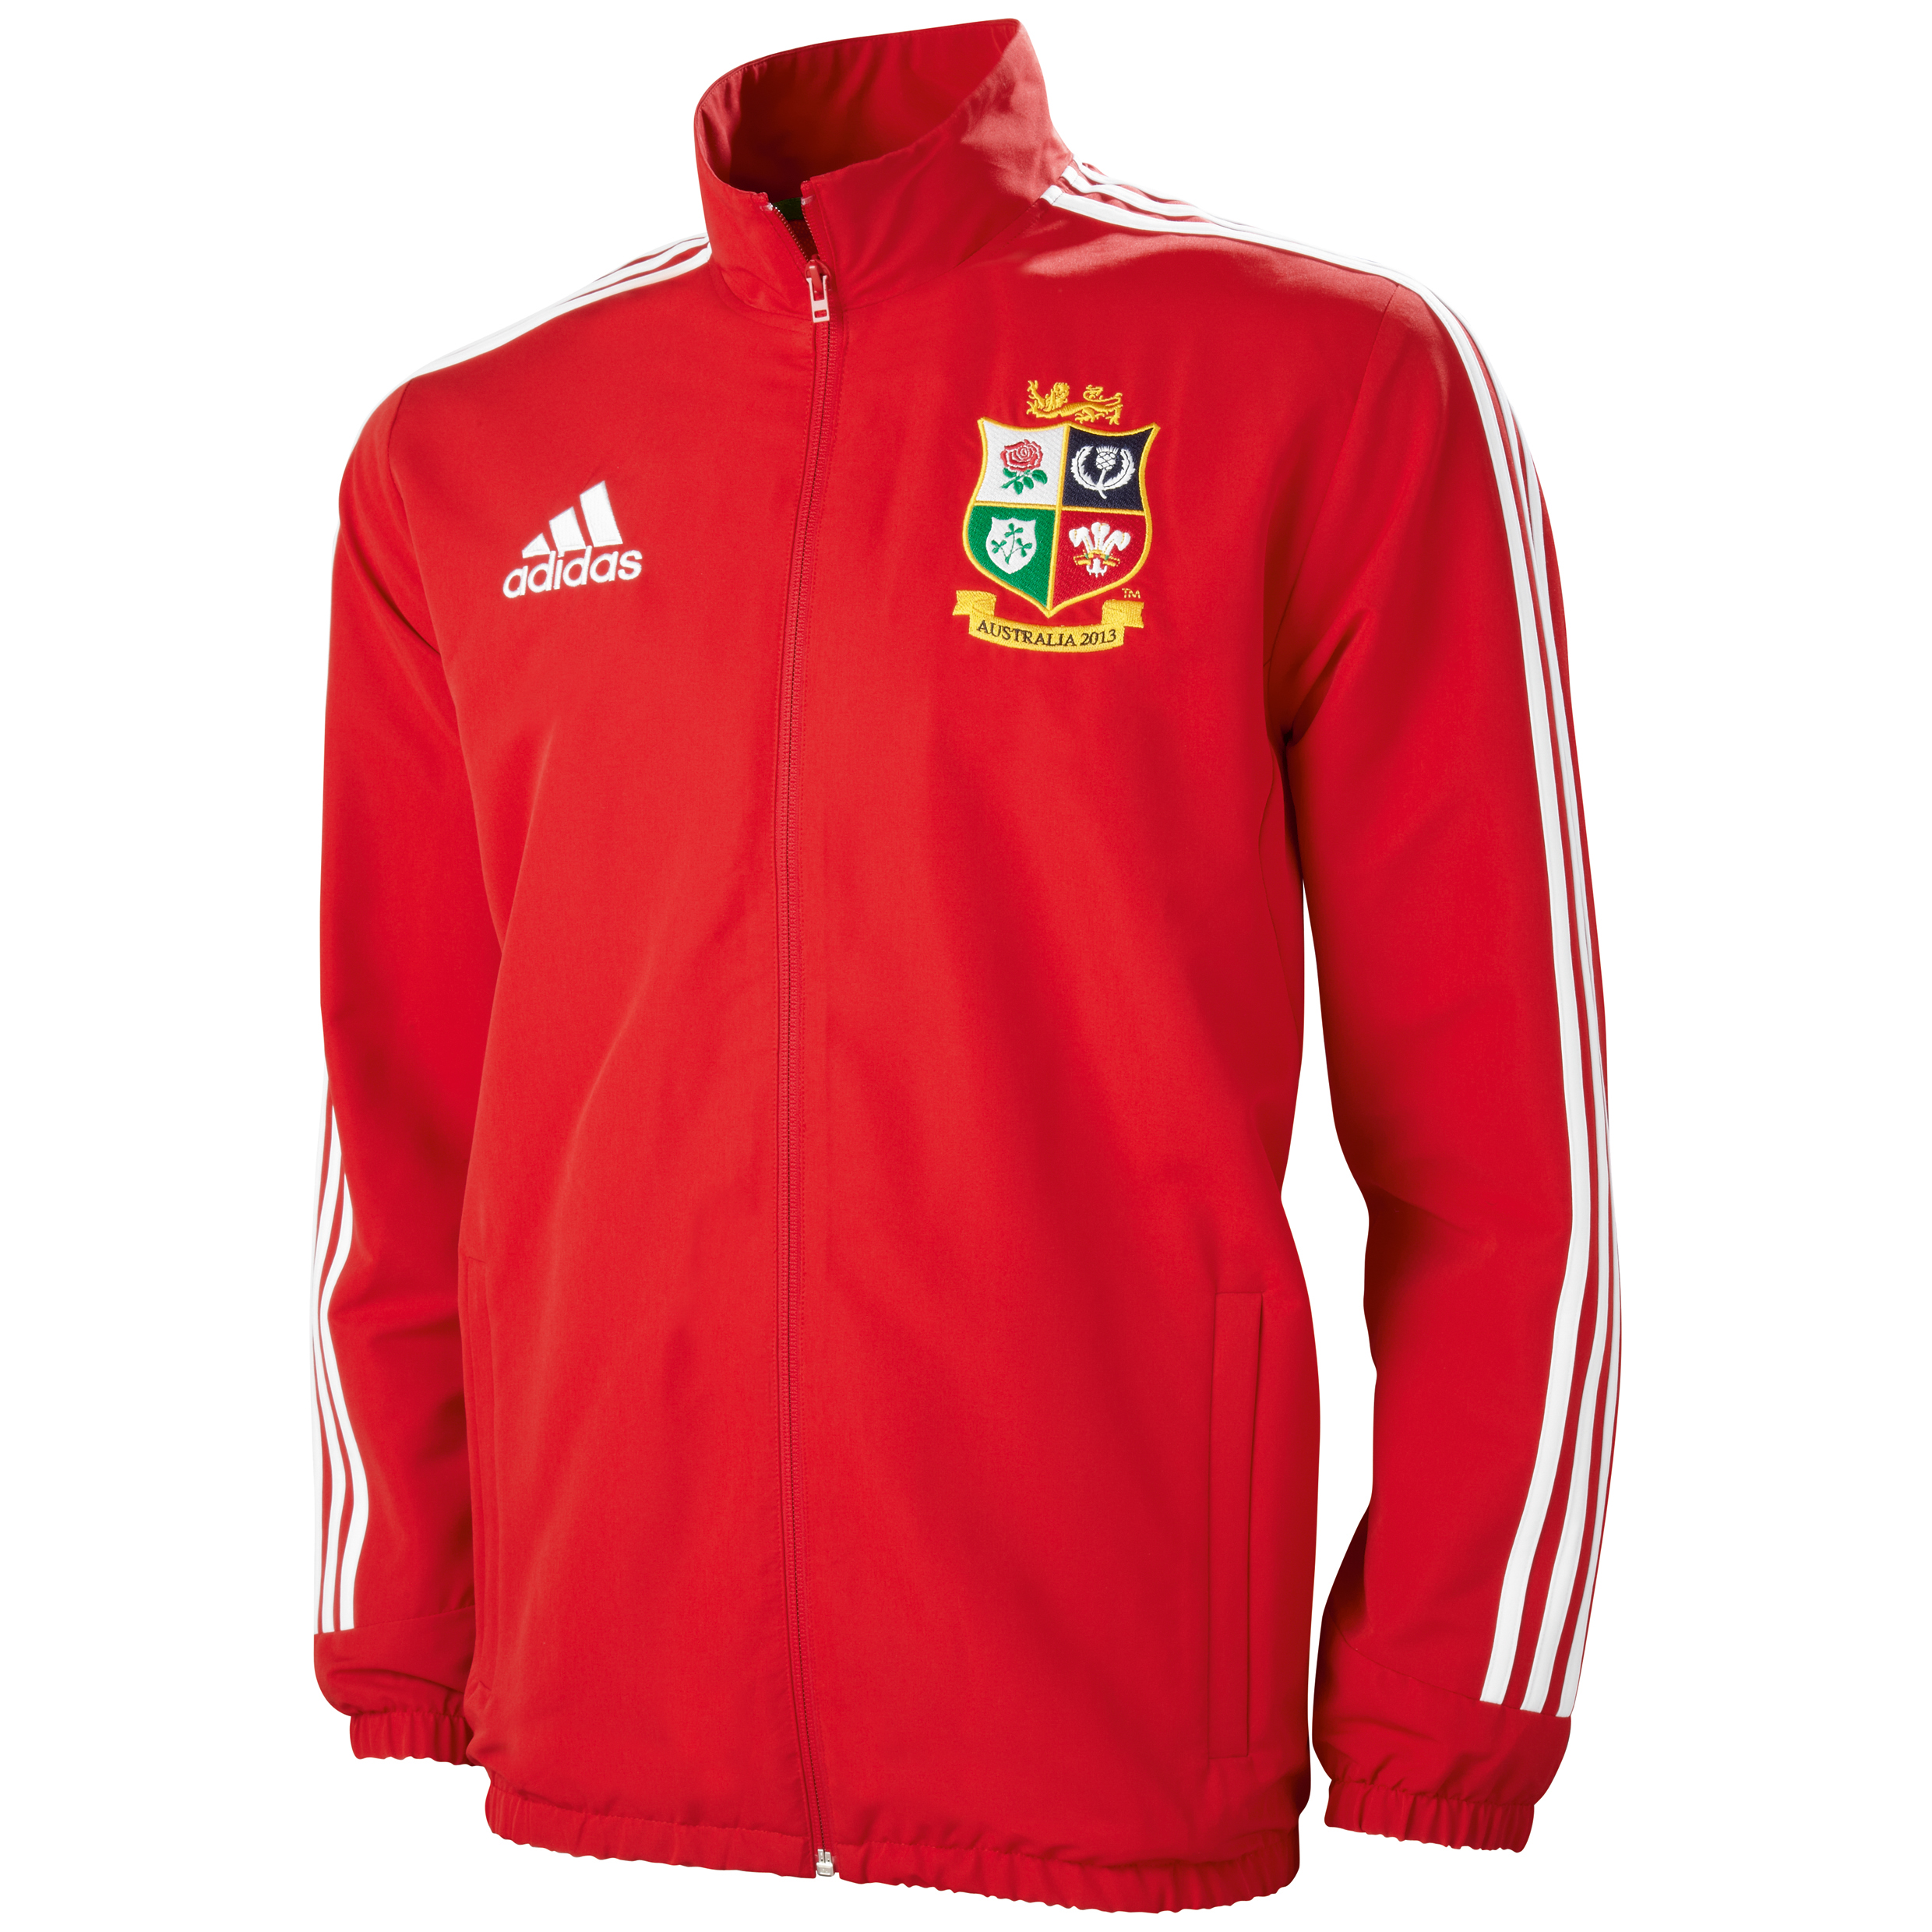 adidas British and Irish Lions Anthem Jacket - University Red/White